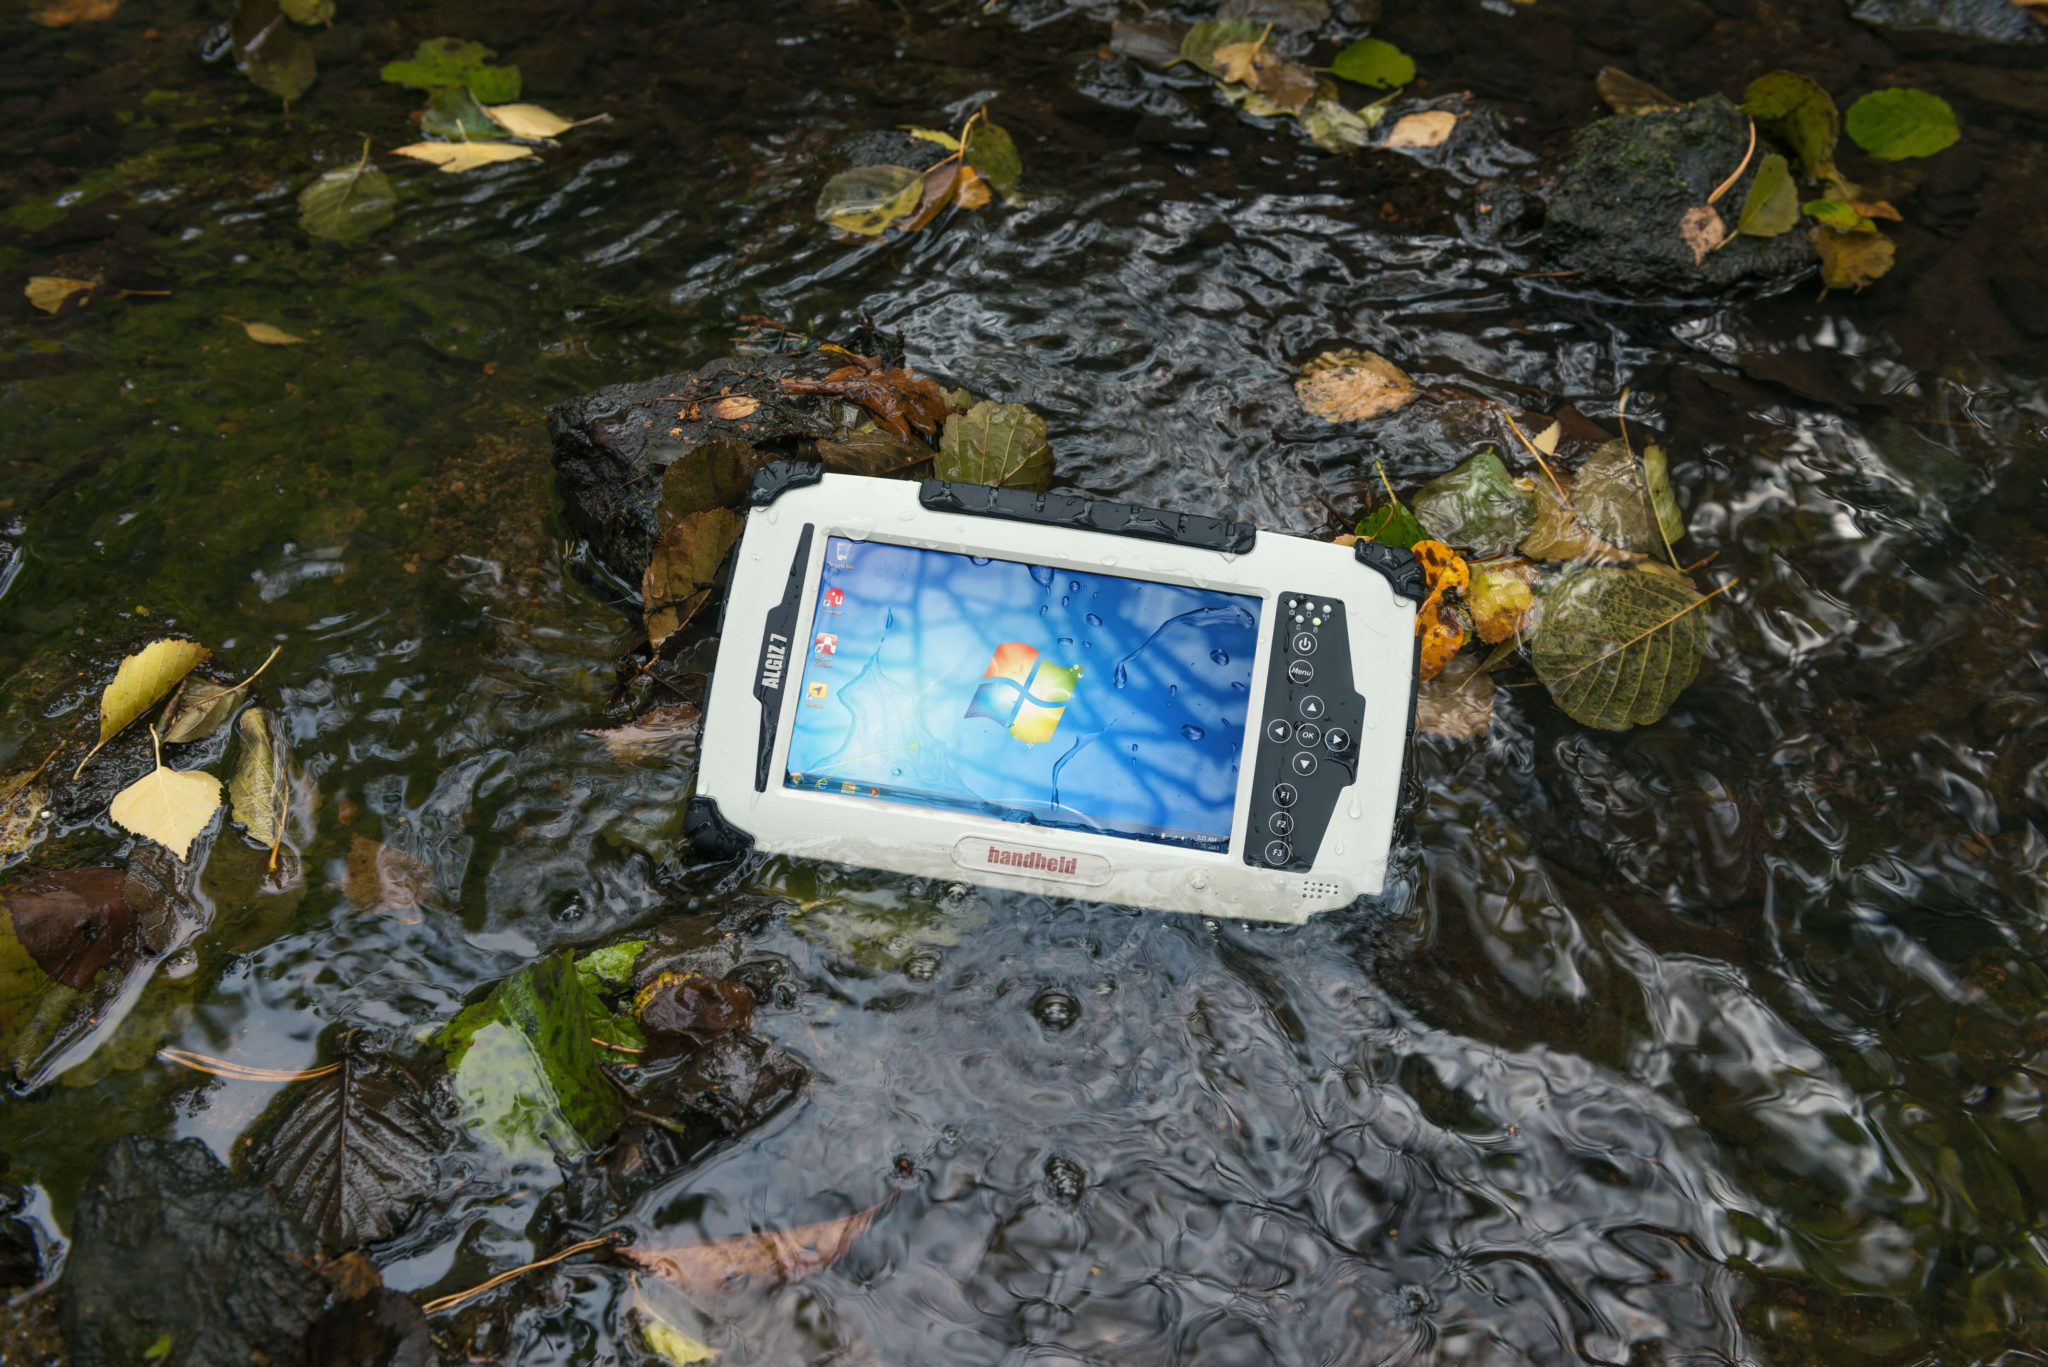 algiz-7-rugged-tablet-outdoors-in-water-ip65